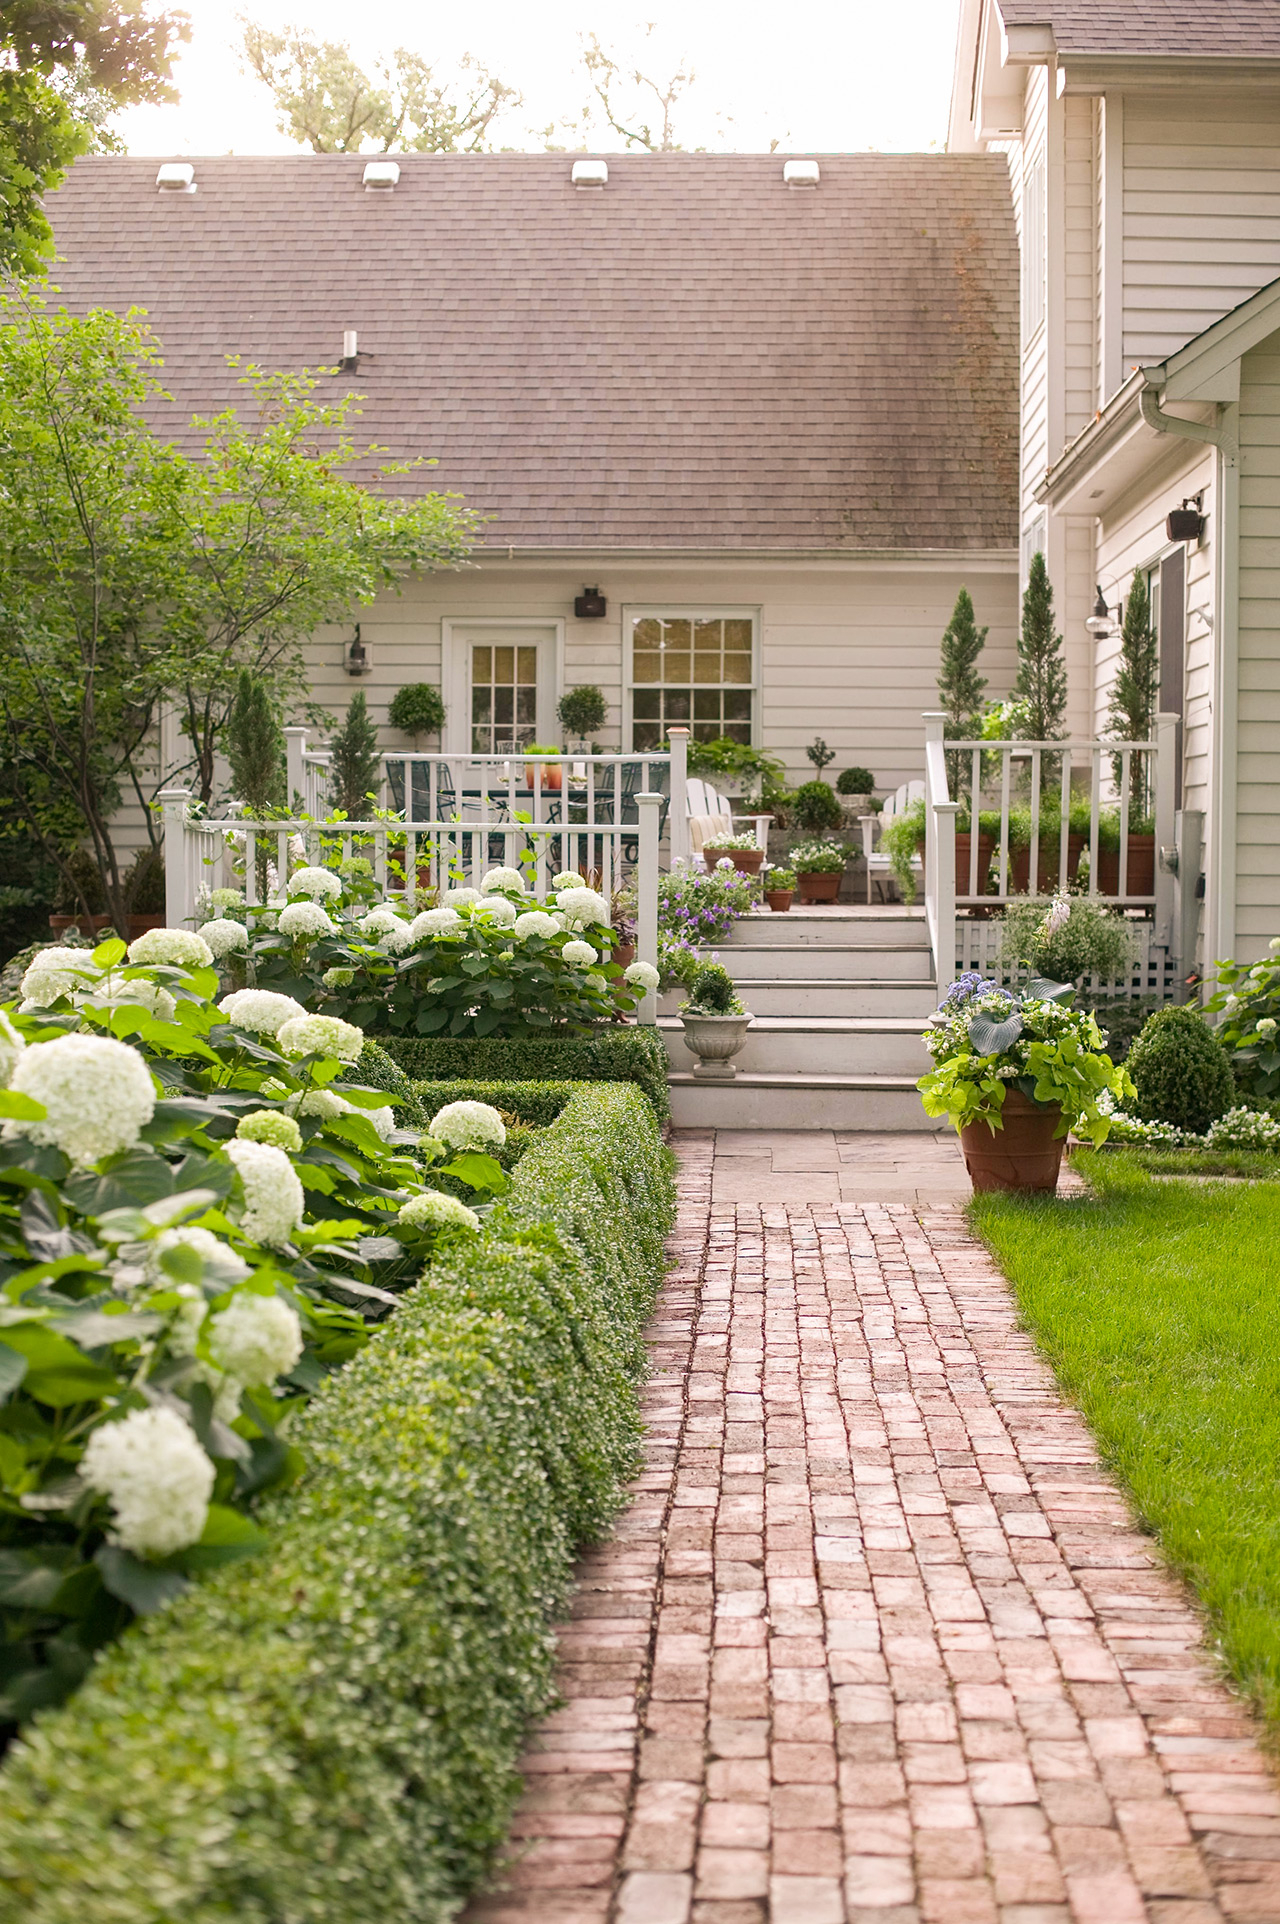 16 Simple Solutions For Small Space Landscapes within Landscaping Ideas For Small Backyards